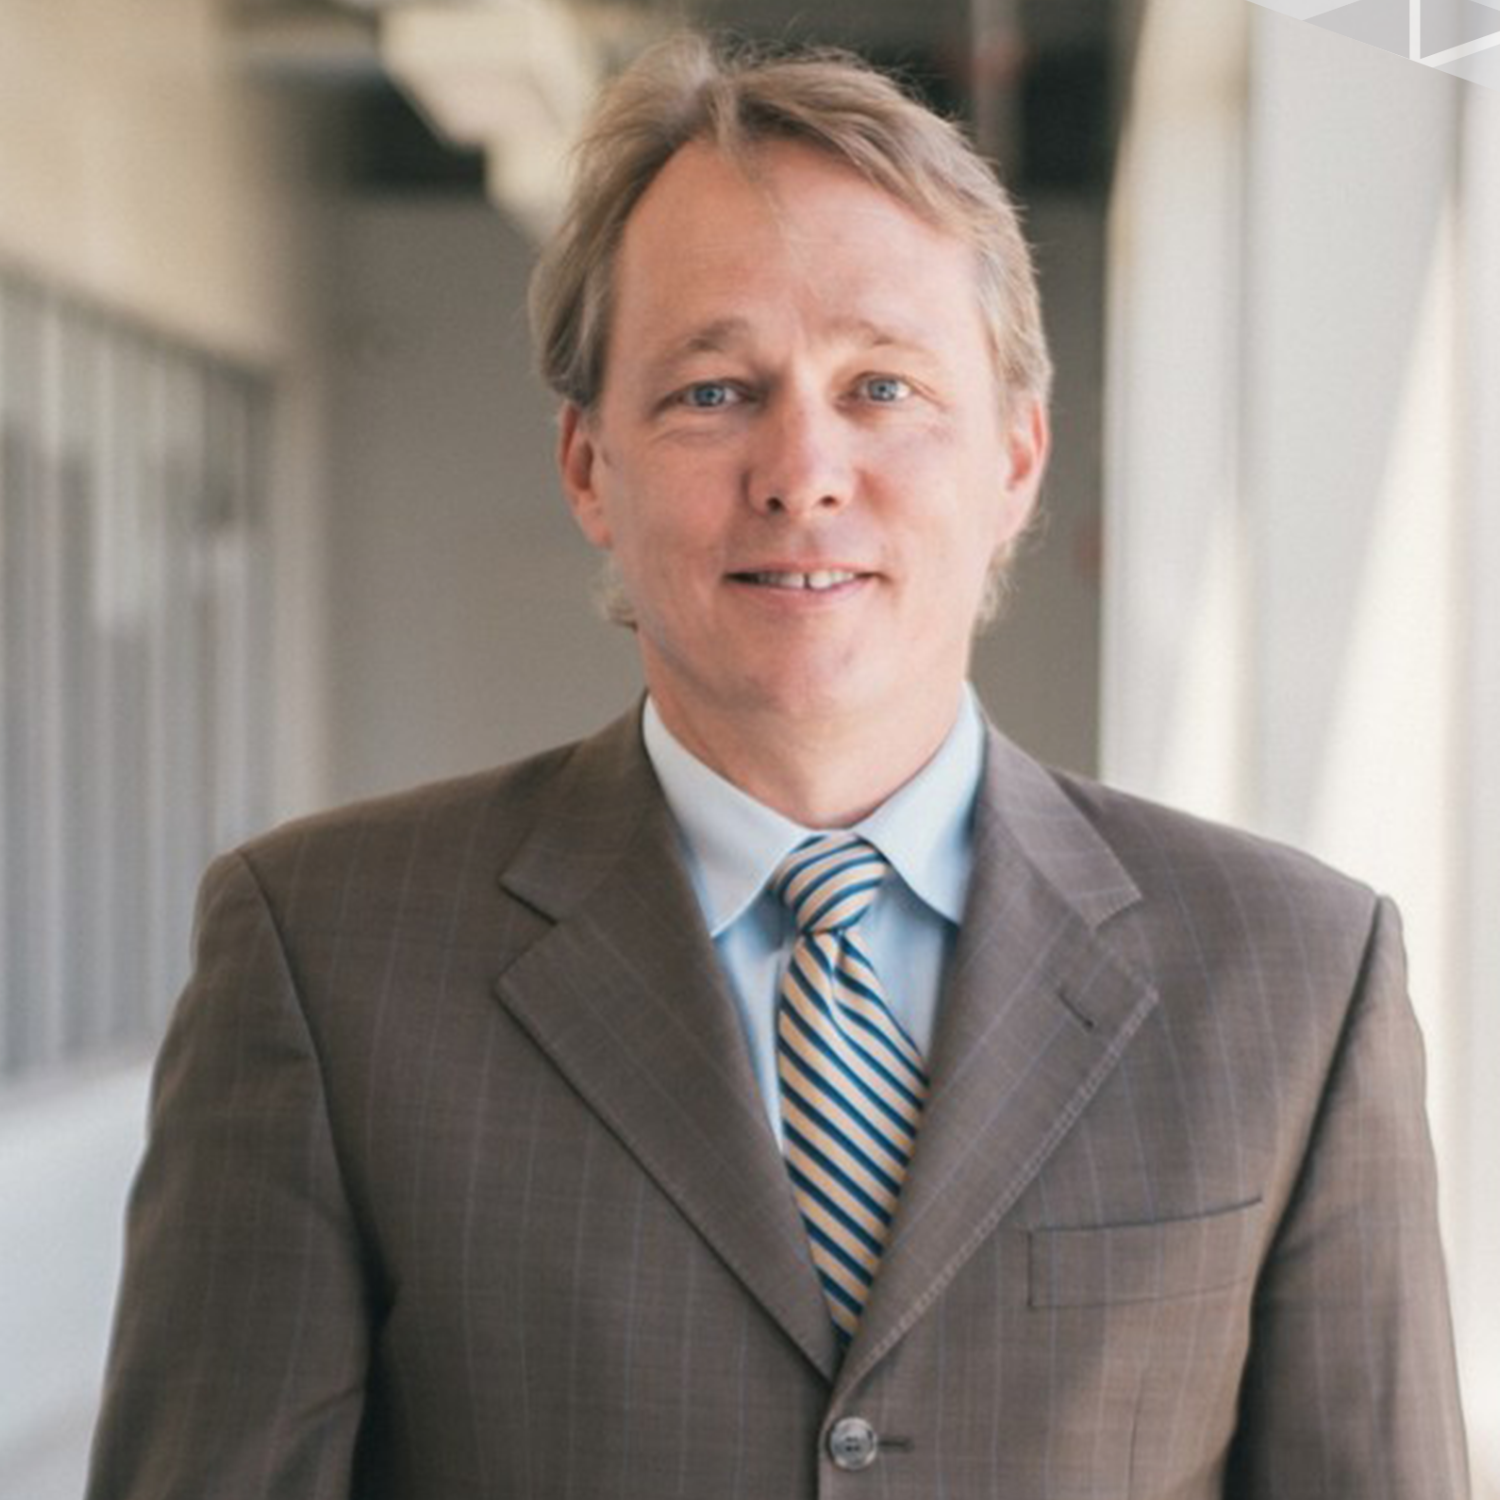 Bruce Linton to Keynote MjMicro Conference in Beverly Hills